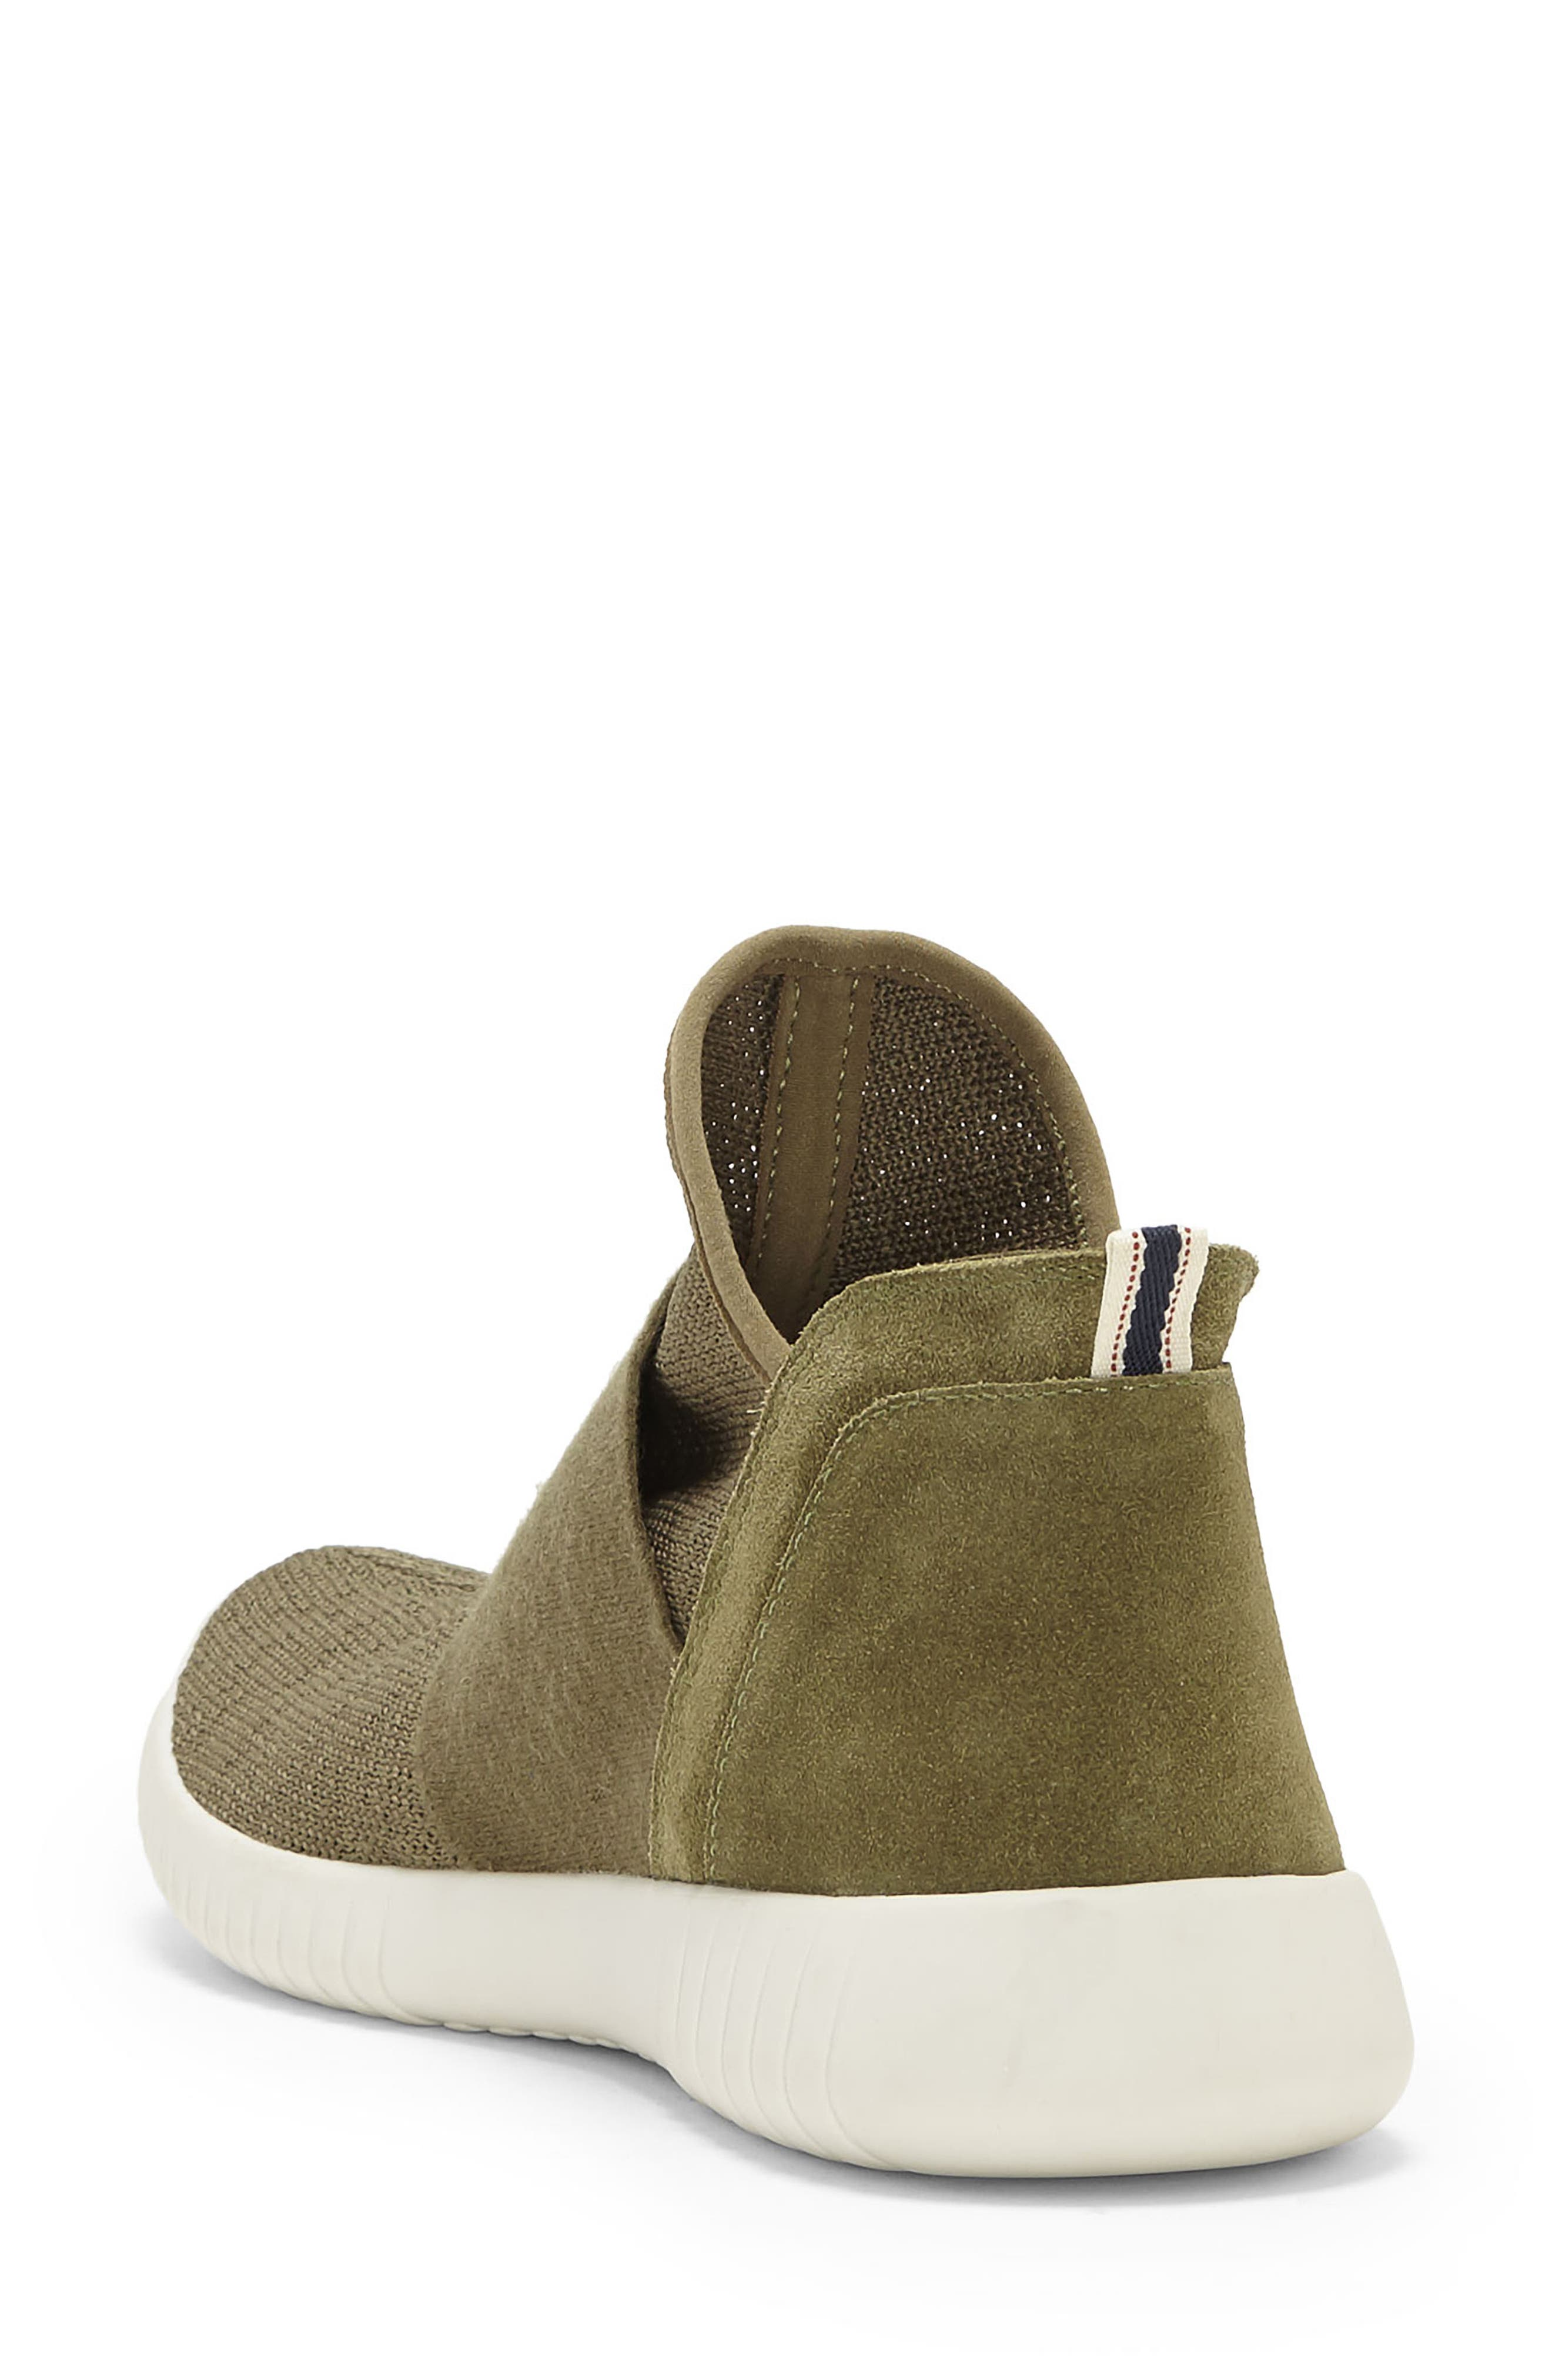 Hachiro High Top Sneaker,                             Alternate thumbnail 2, color,                             Chive Fabric